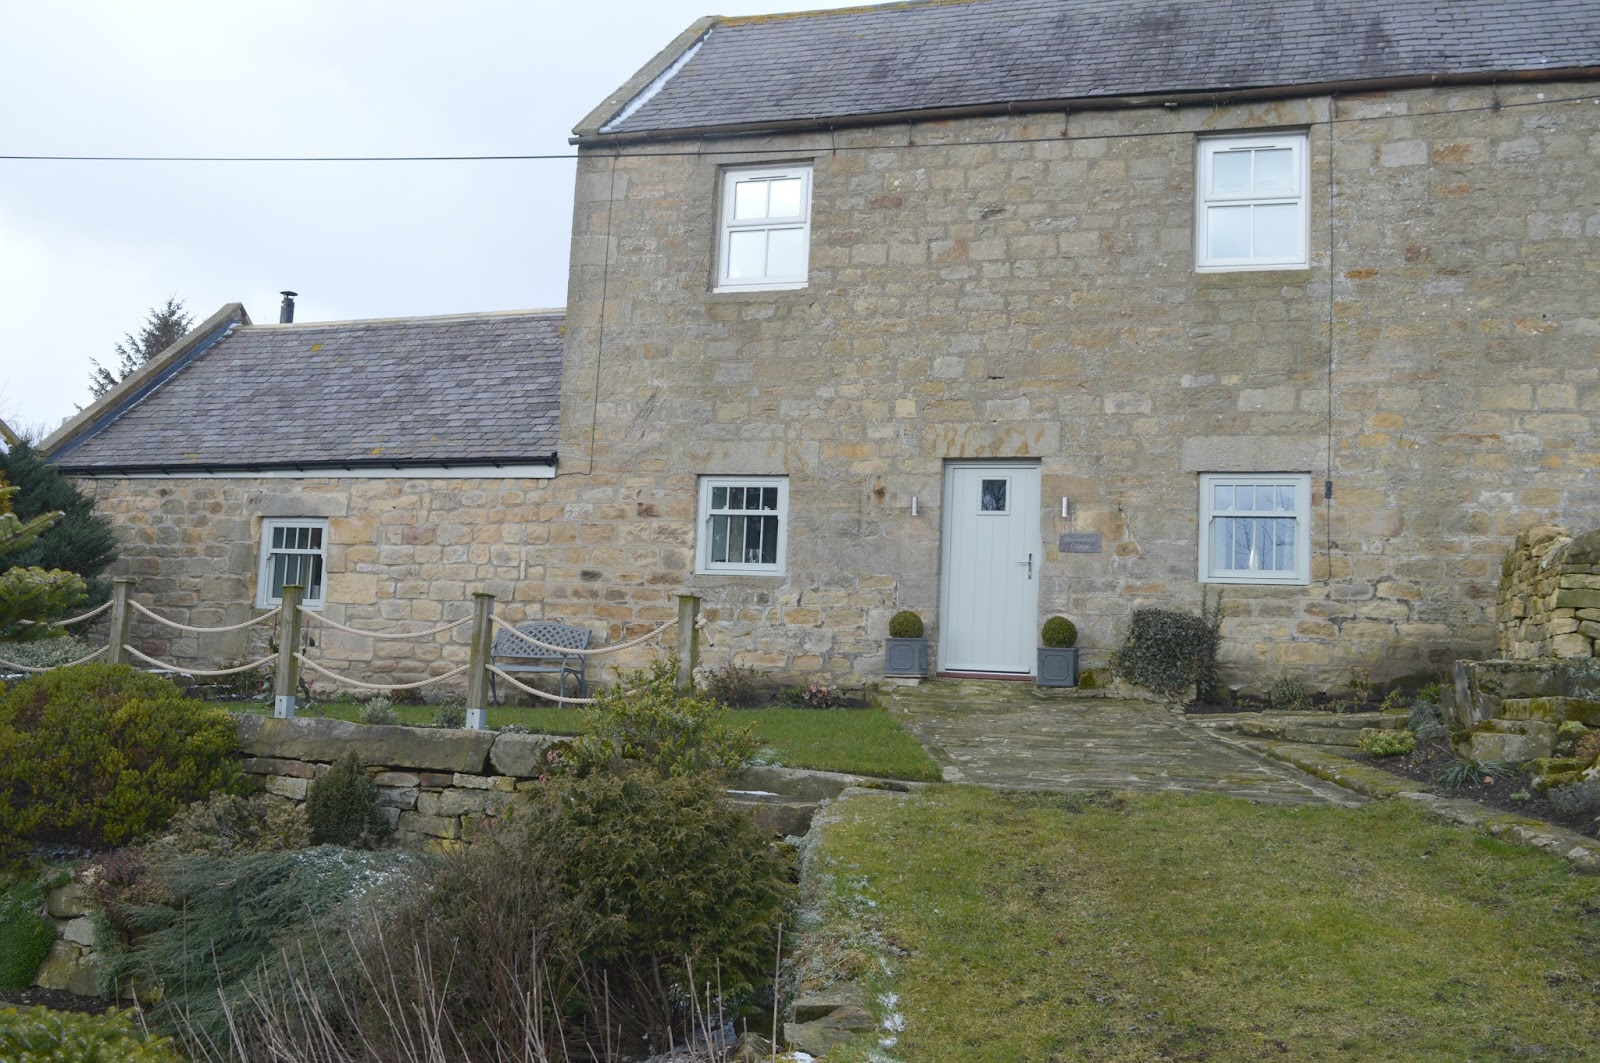 Heavenfield Cottage at Hadrian's Wall, Northumberland - St Oswalds Farm